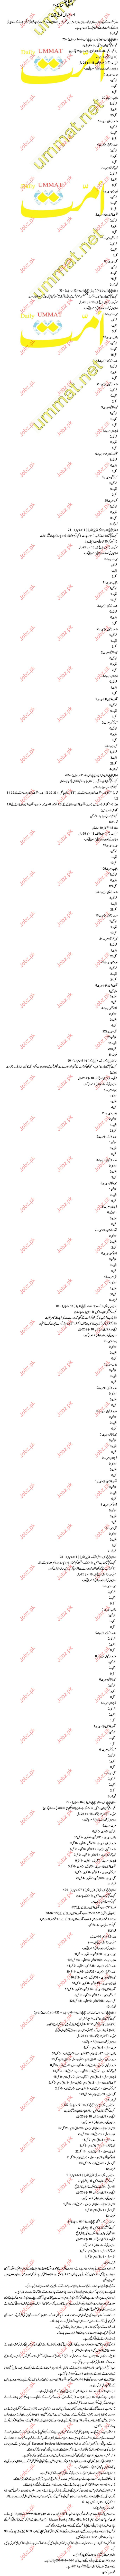 StenoTypists Required For federal Government Department